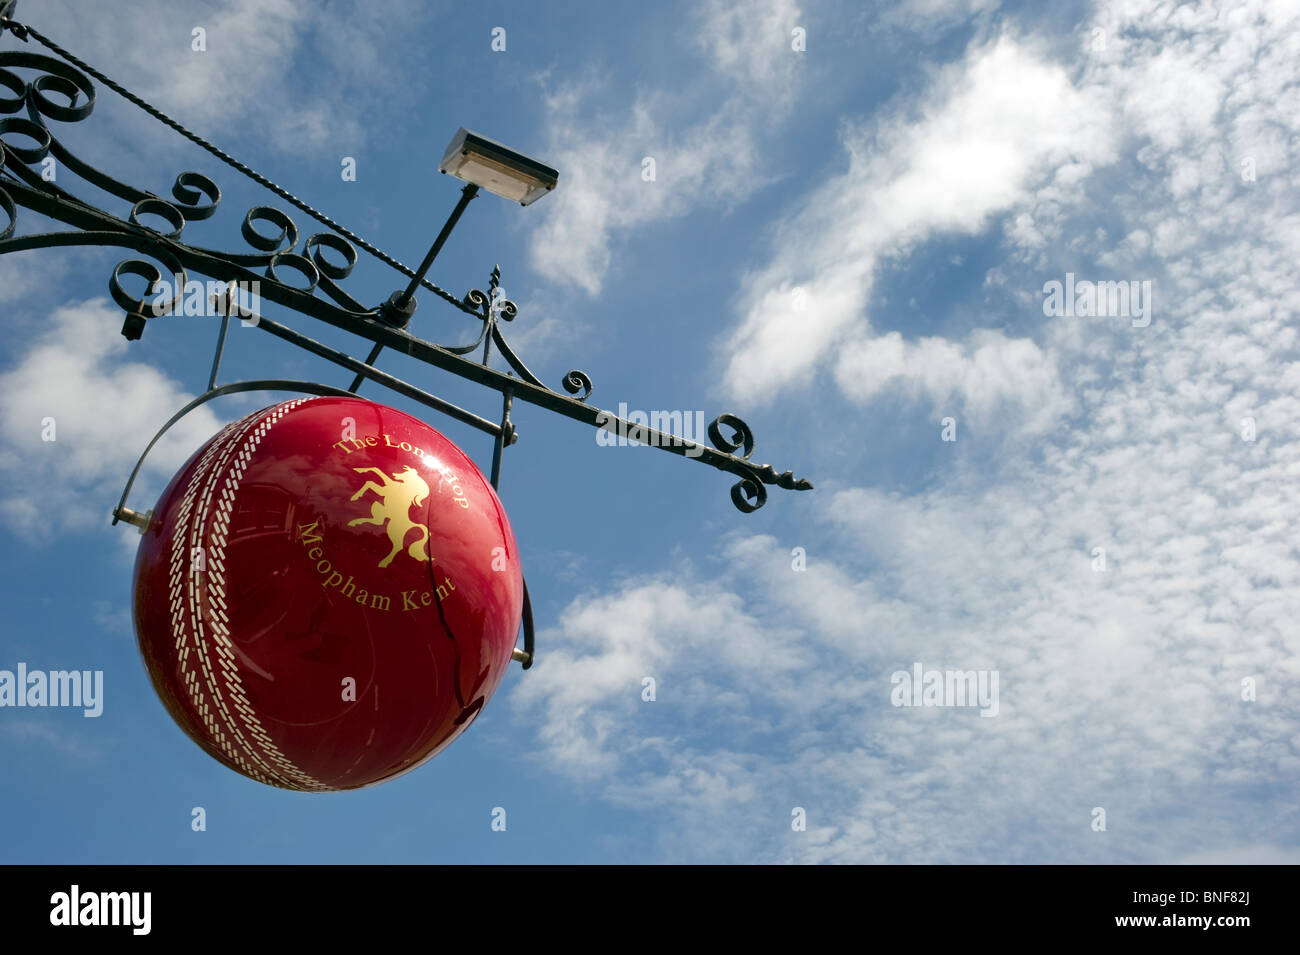 The cricket ball suspended against a Summer blue sky is the hanging pub sign of the Long Hop public house in Meopham - Stock Image